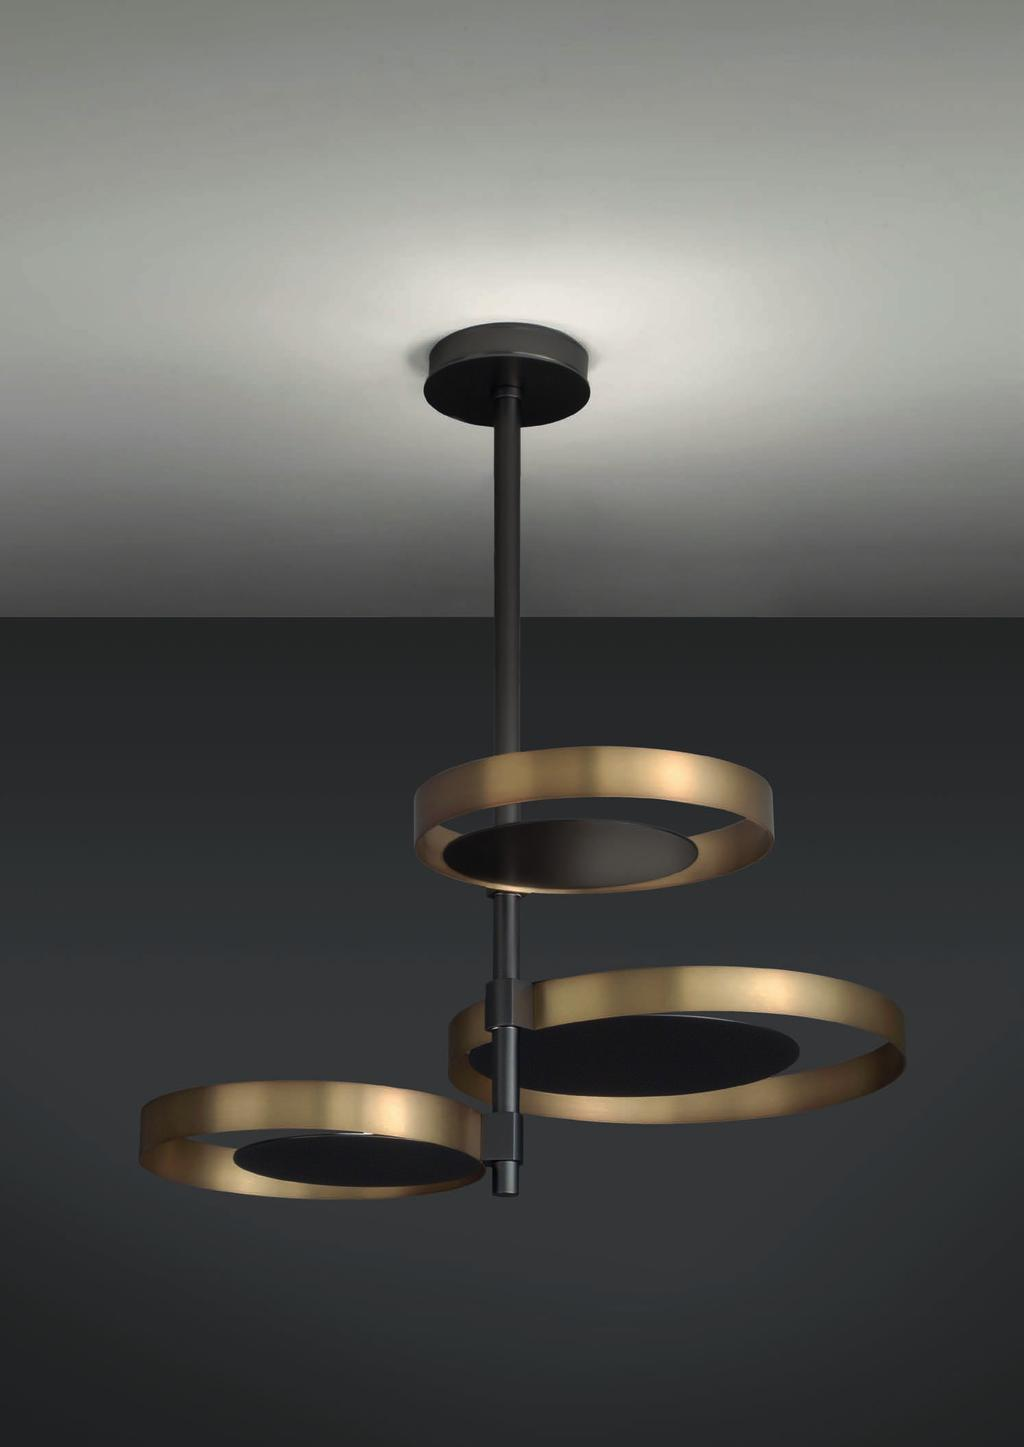 CIRCLE SUSPENSION 90cm-35 4 Ø 58cm-22 8 Suspended lamp with indirect light, satinated natural brass rings and matte black nickel central